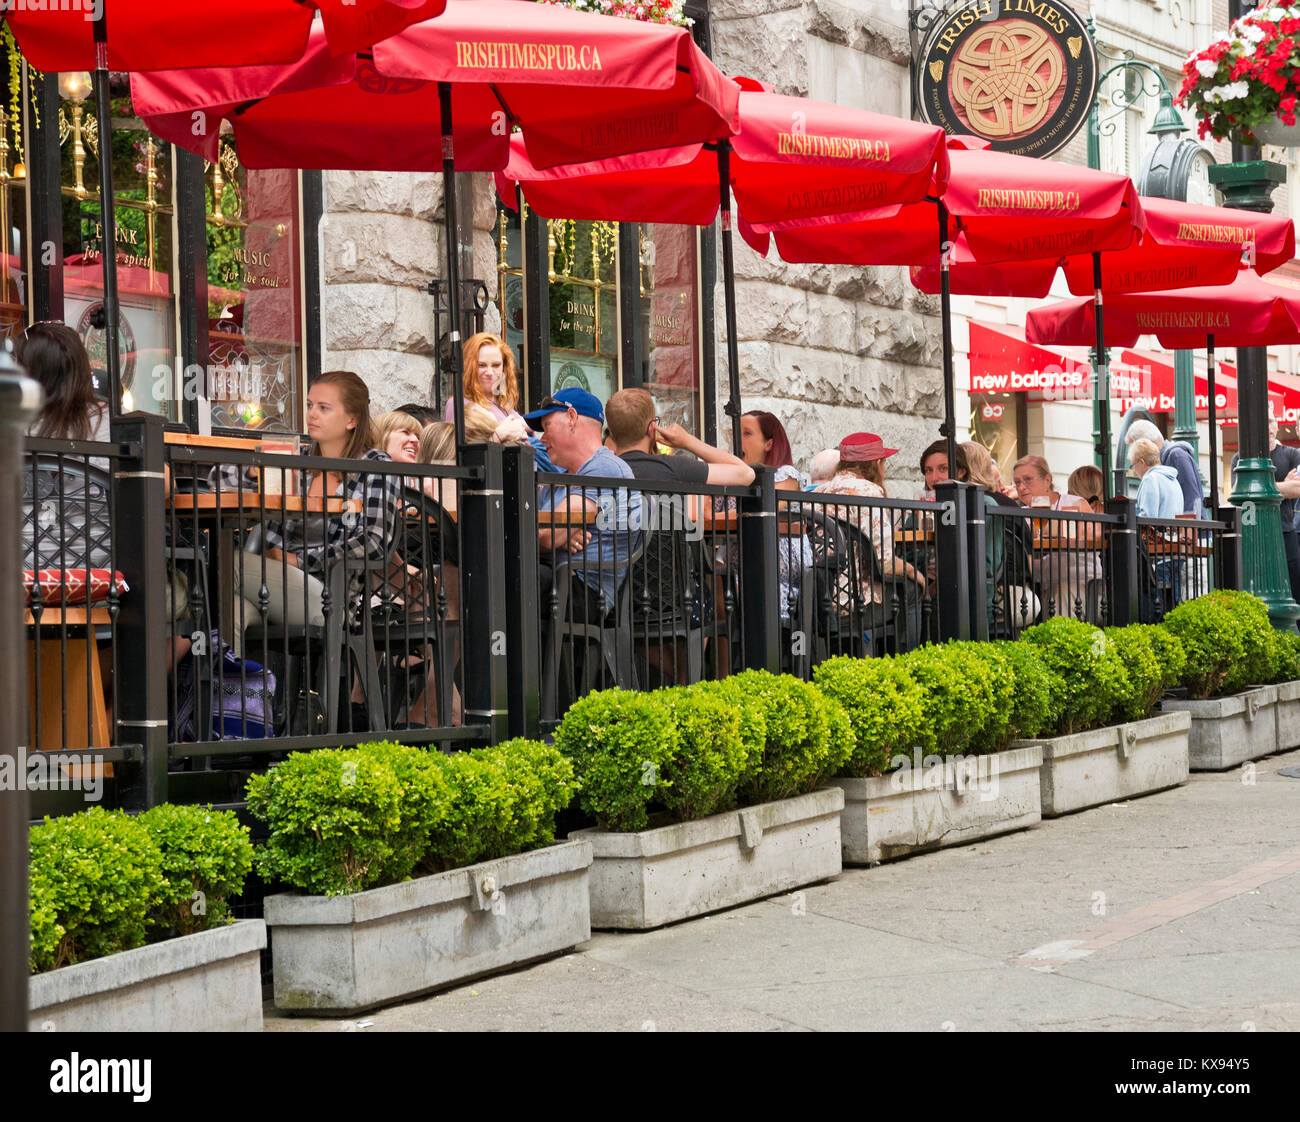 People dining on the outside patio of the Irish Times Pub in Victoria, British Columbia, Canada.  Victoria BC Canada - Stock Image